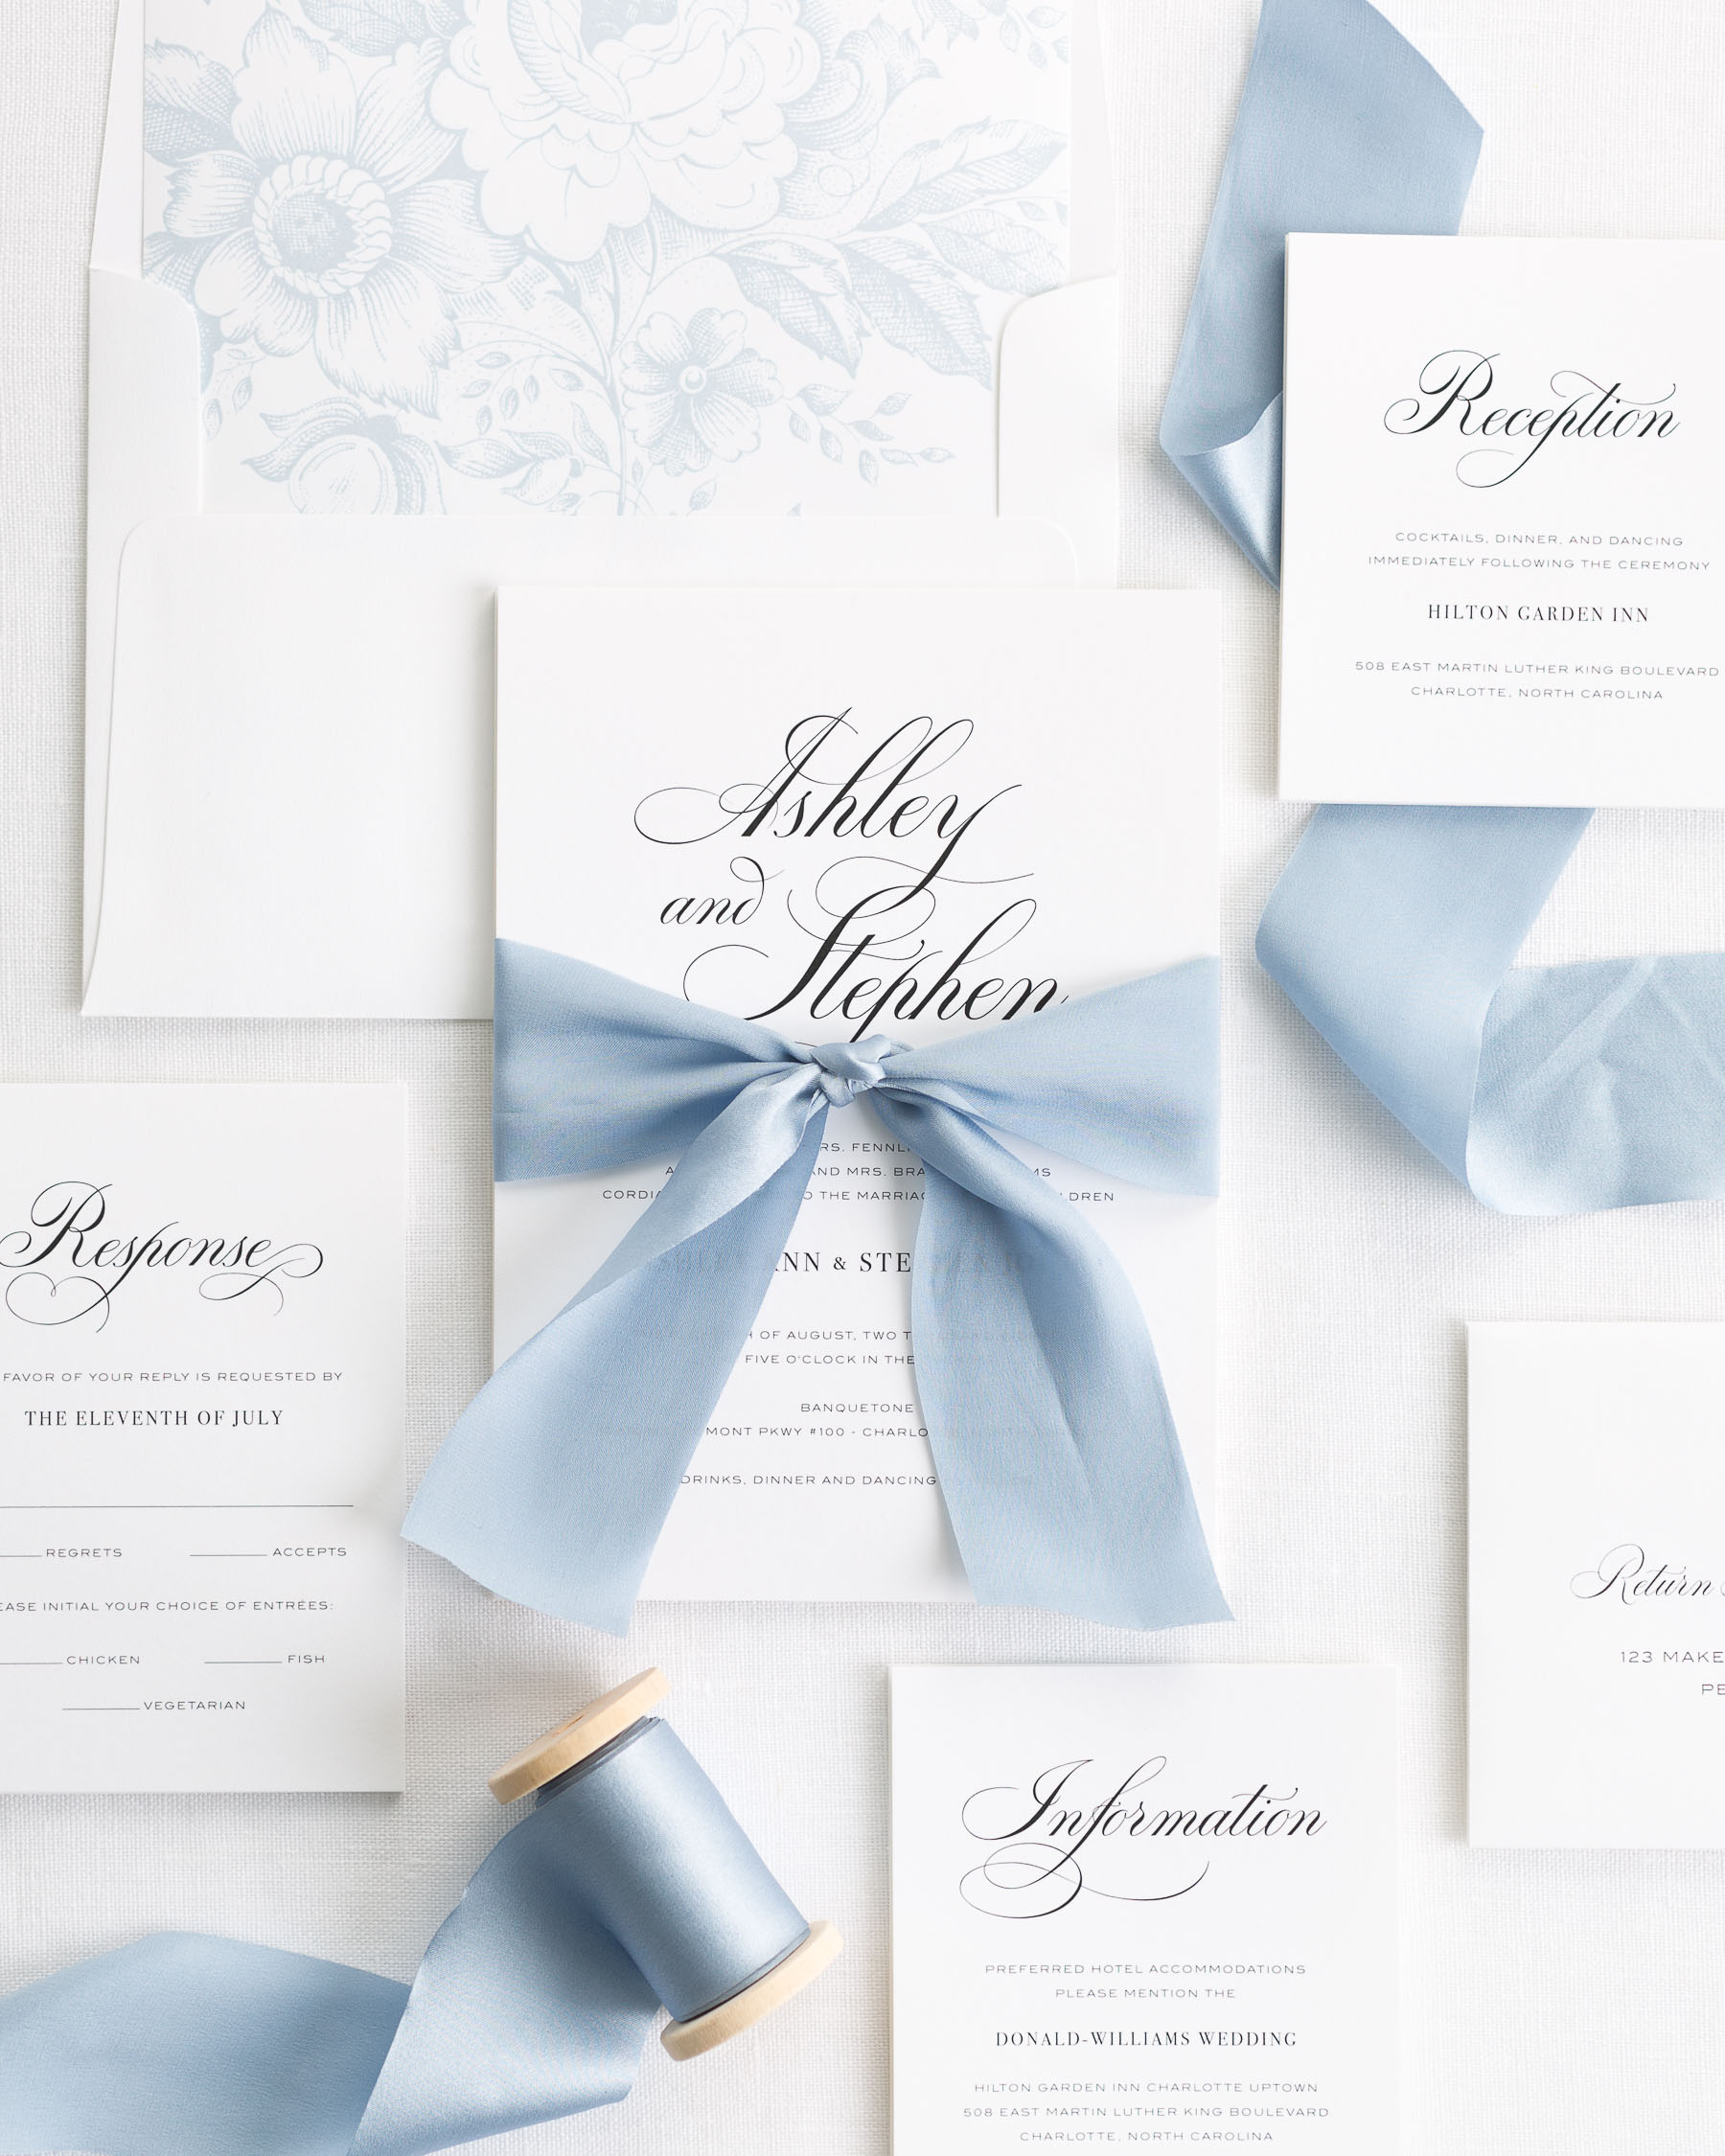 Wedding Invitations With Ribbon: Timeless Calligraphy Ribbon Wedding Invitations